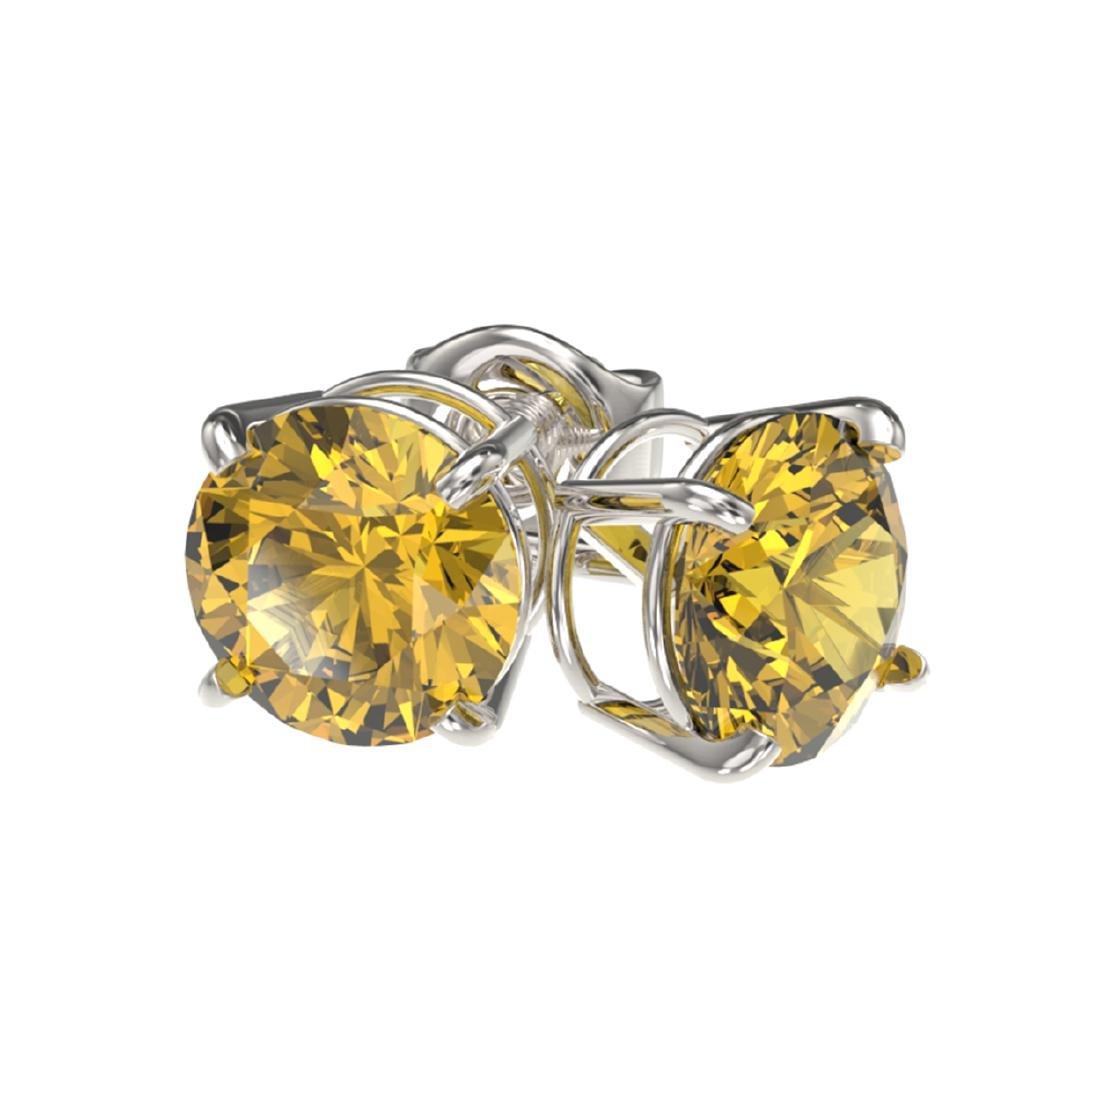 1.54 ctw Intense Yellow Diamond Stud Earrings 10K White - 3